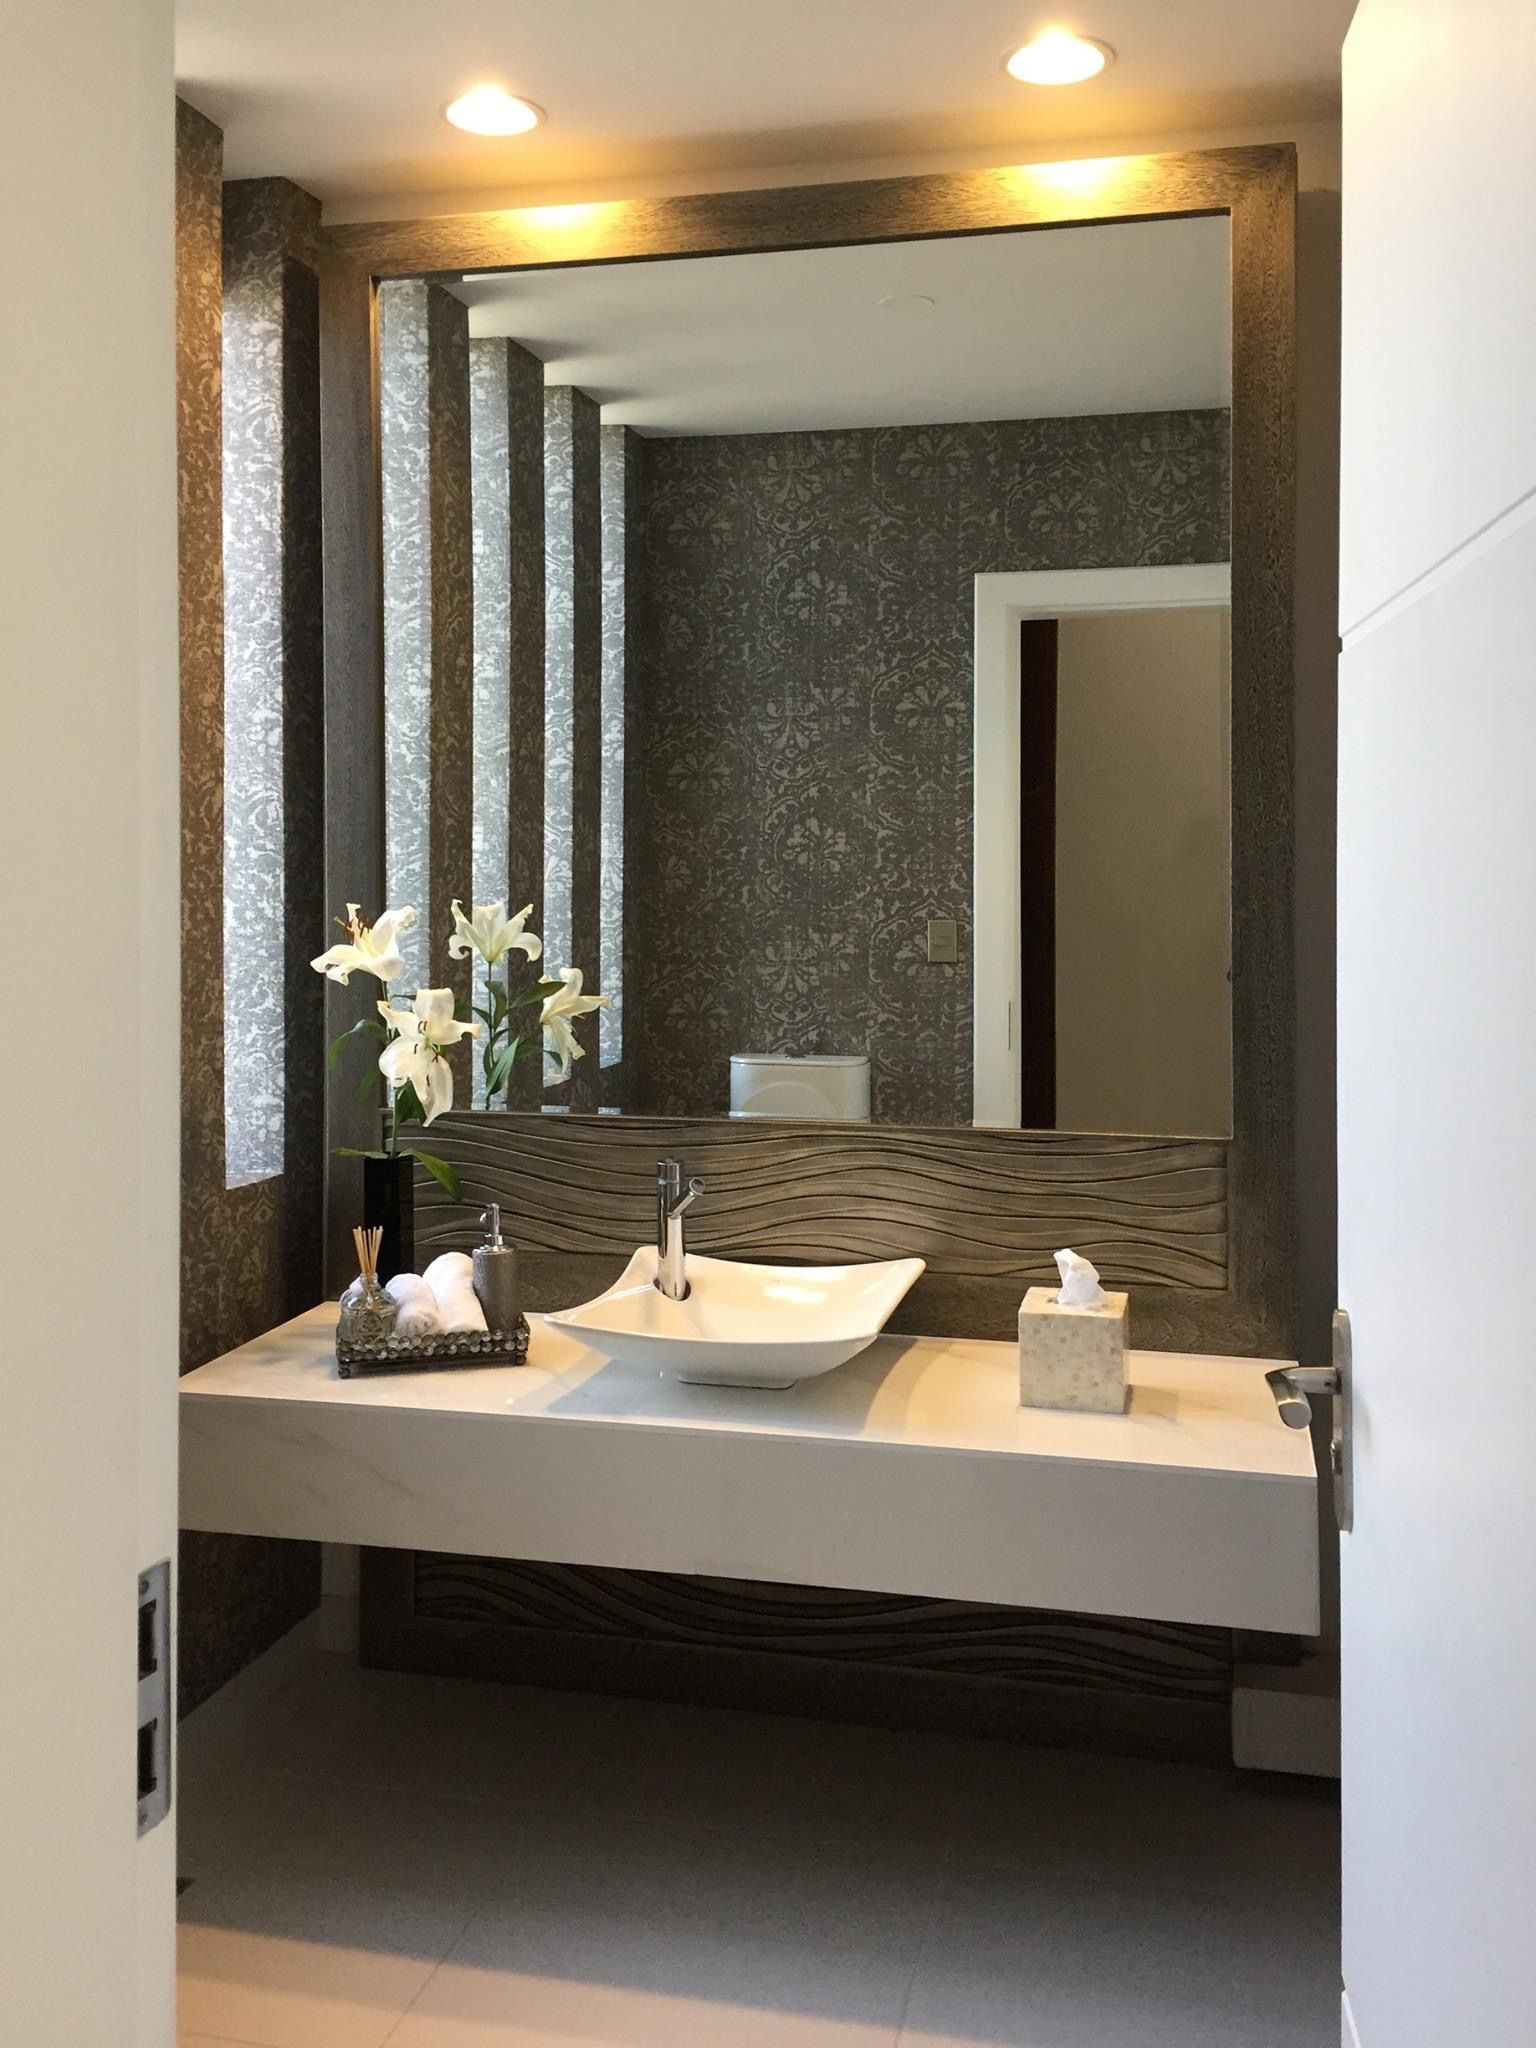 Modern 1950s Bathroom And Vintage On Pinterest: 14+ Ideal Small Bathroom Remodel Walls Ideas In 2019